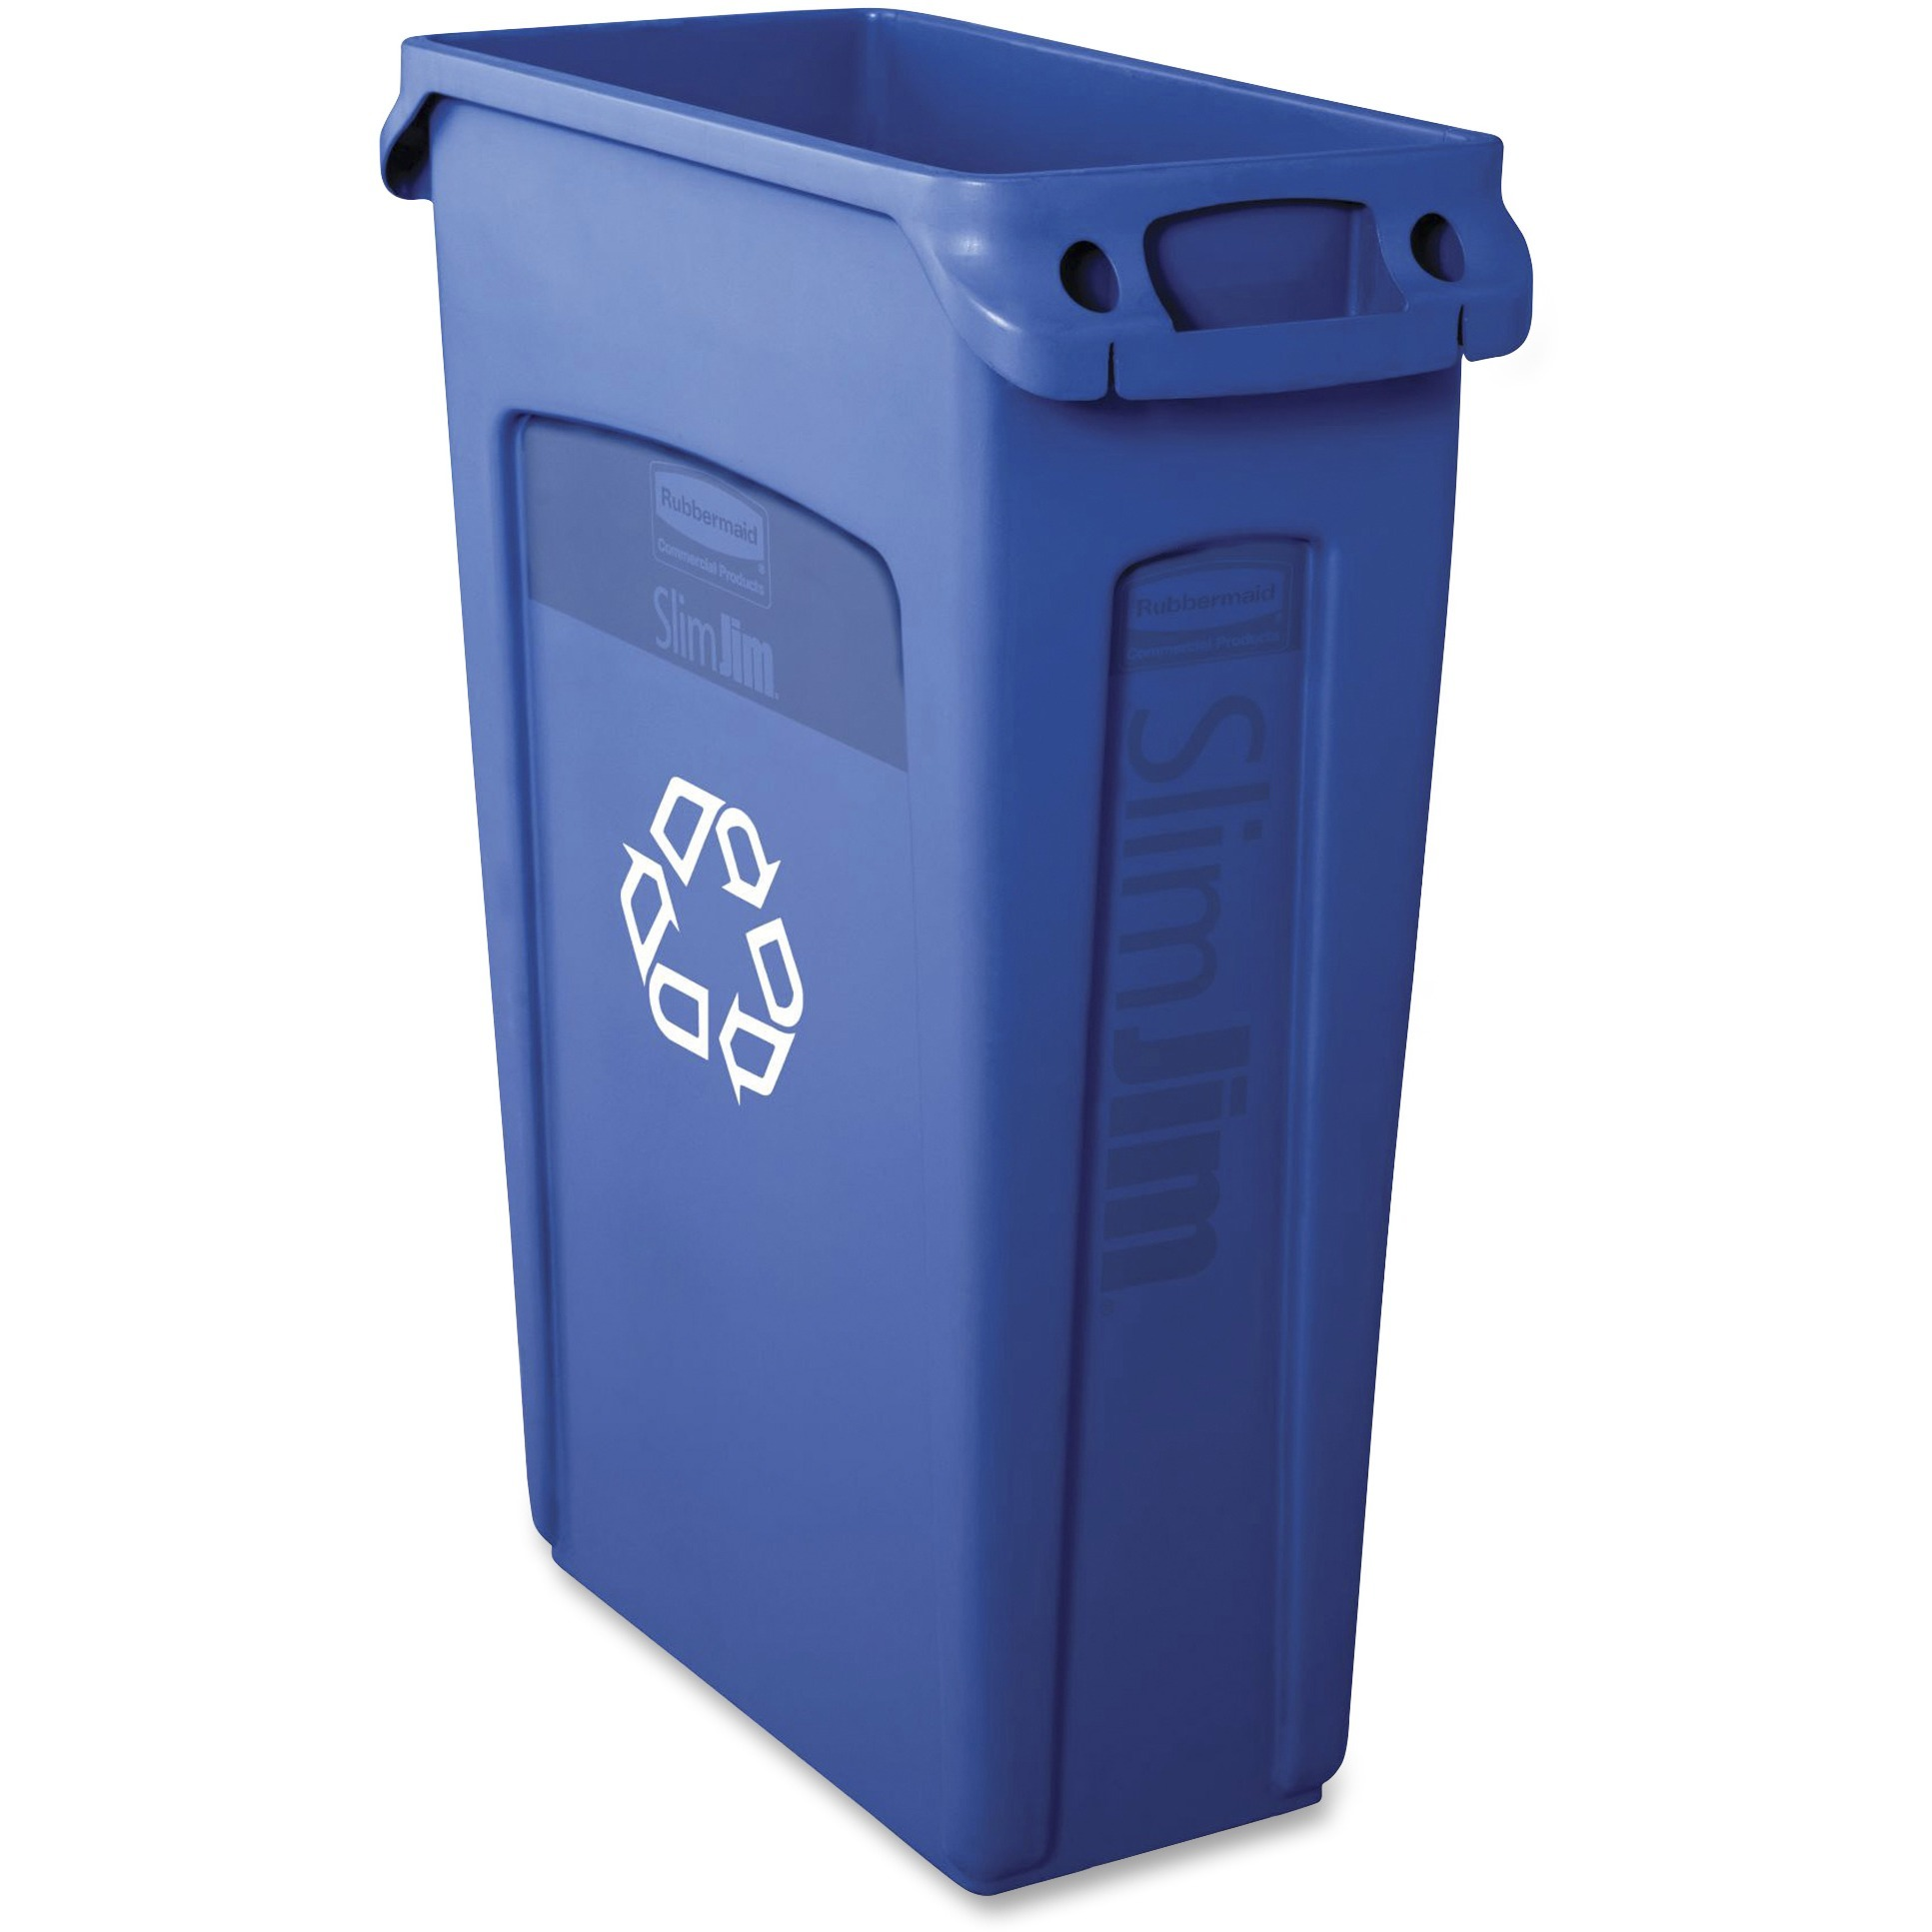 Rubbermaid Commercial Venting Slim Jim Container, Blue